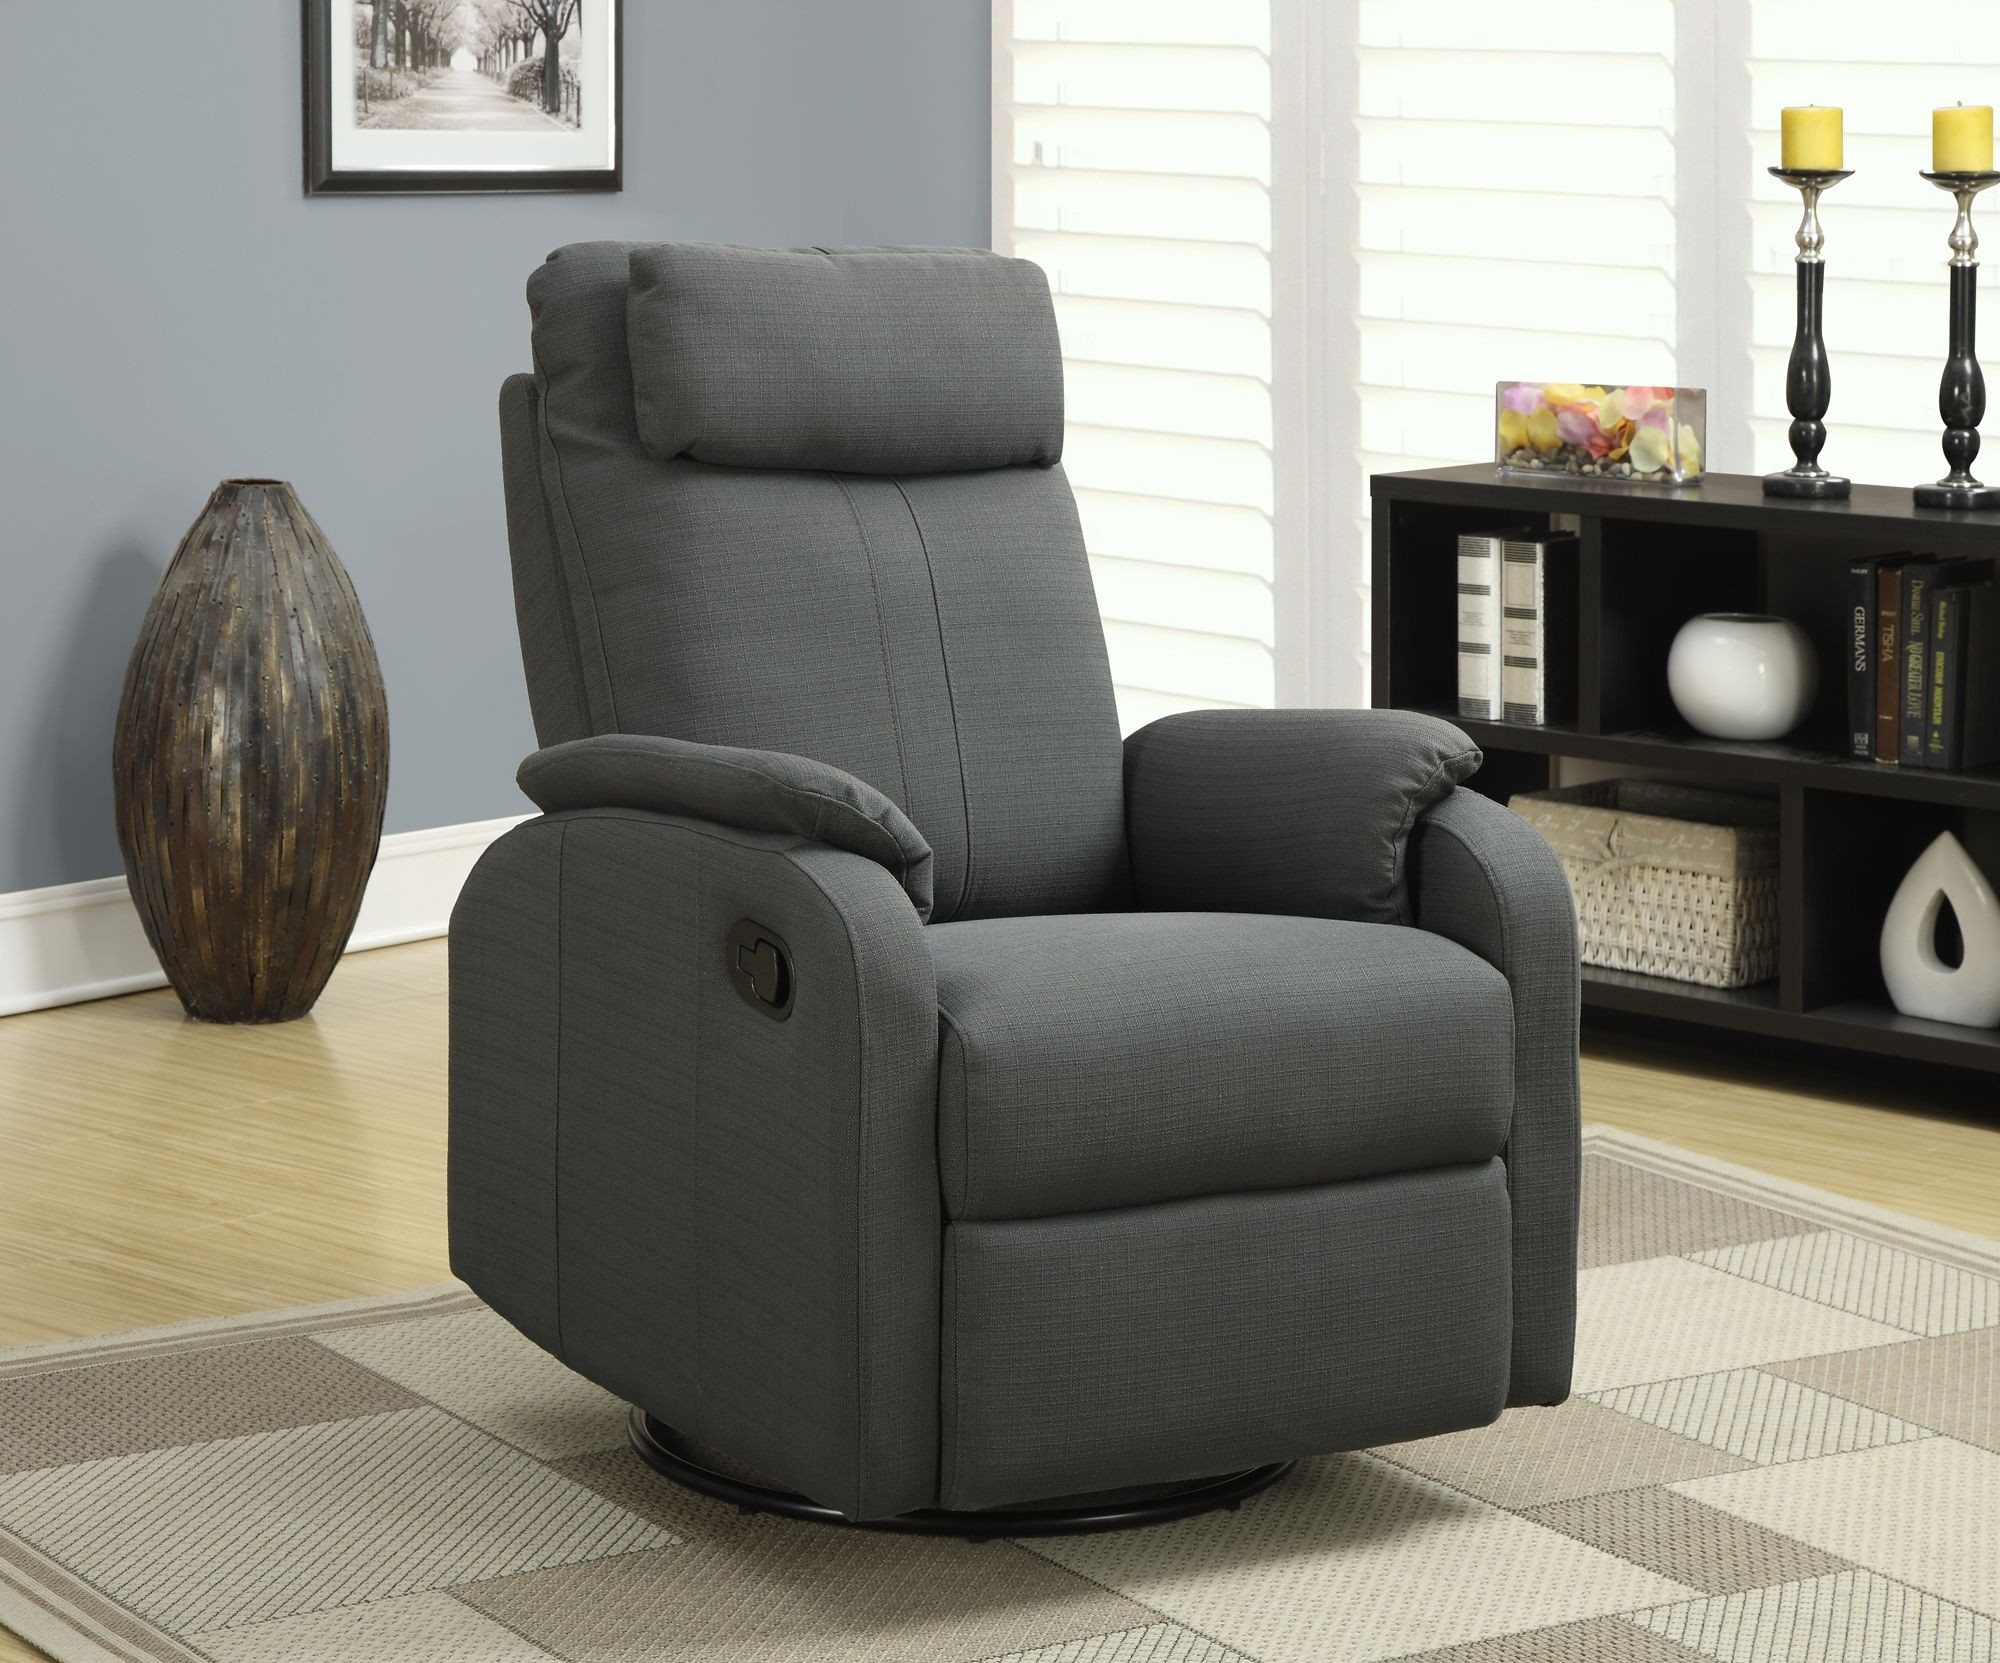 Gray Recliner Chair Charcoal Gray Linen Fabric Swivel Rocker Recliner From